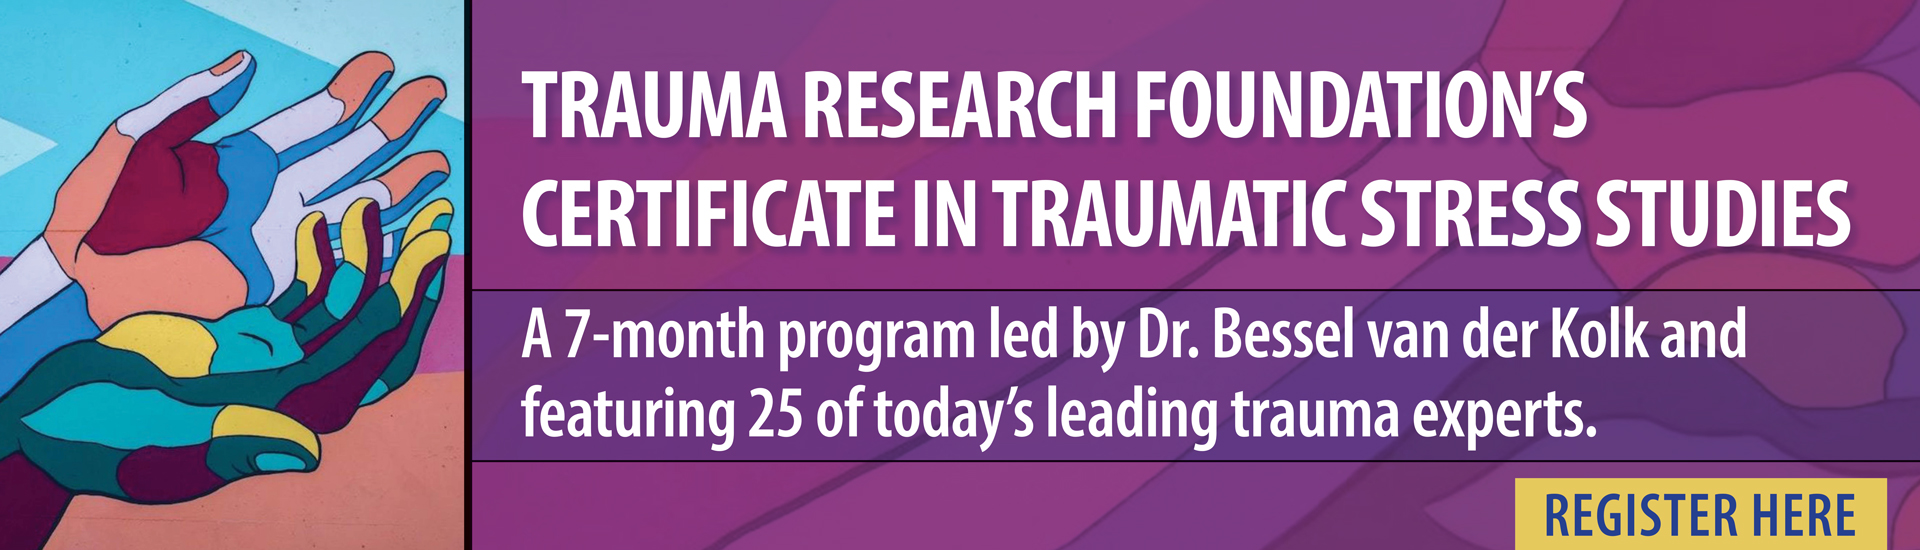 Trauma Research Foundation's Certificate in Traumatic Stress Studies